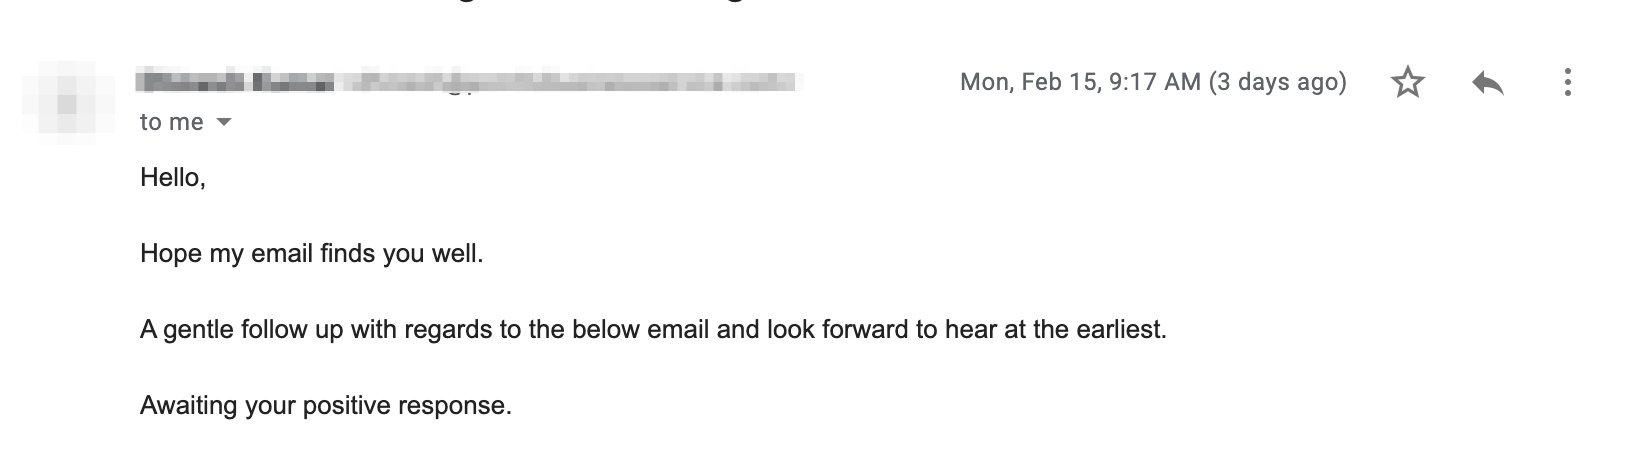 Cold email without call-to-action